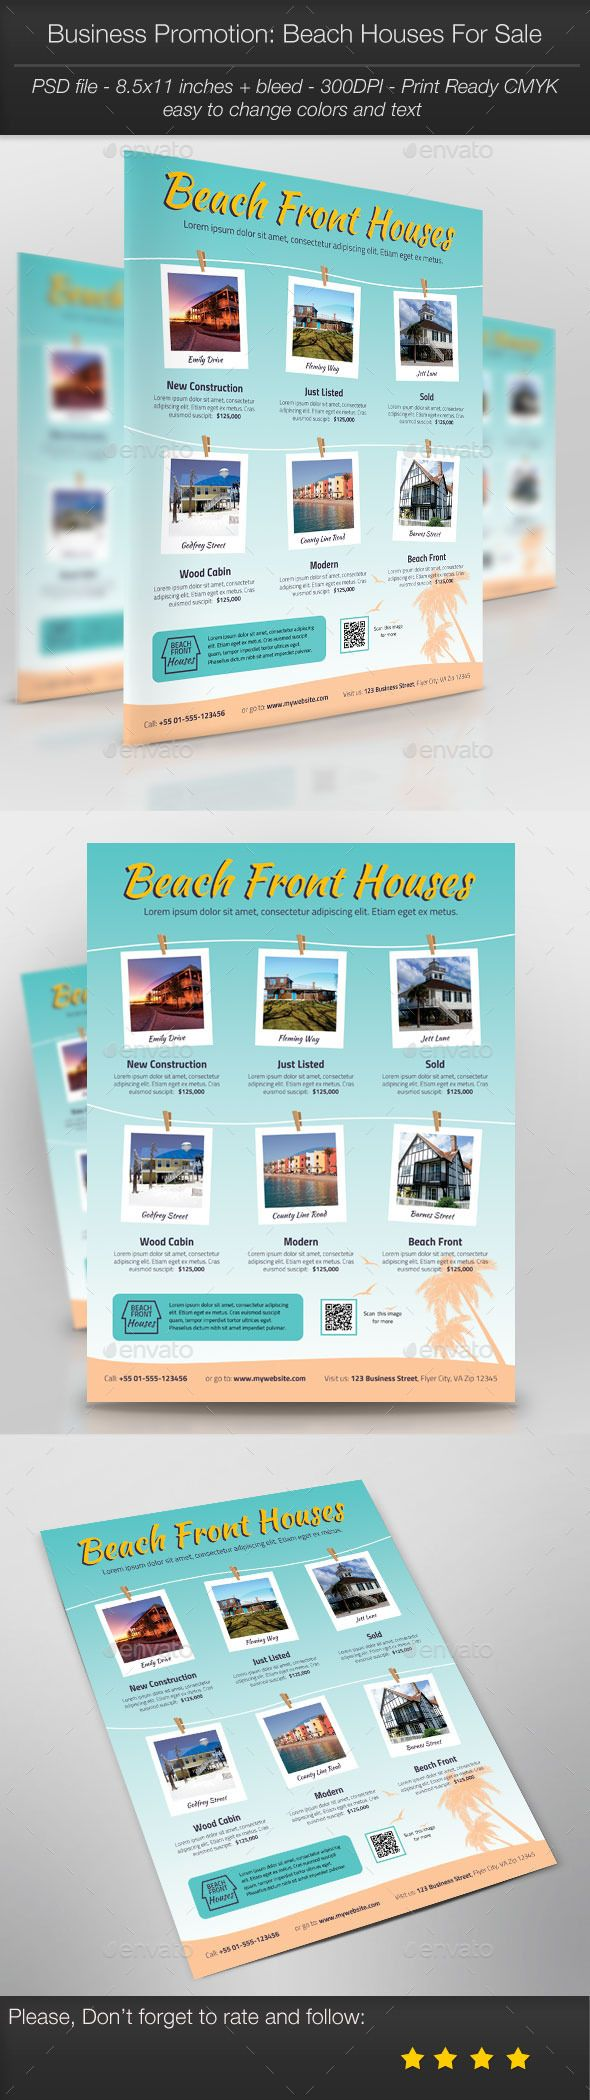 Business Promotion: Beach Houses For Sale